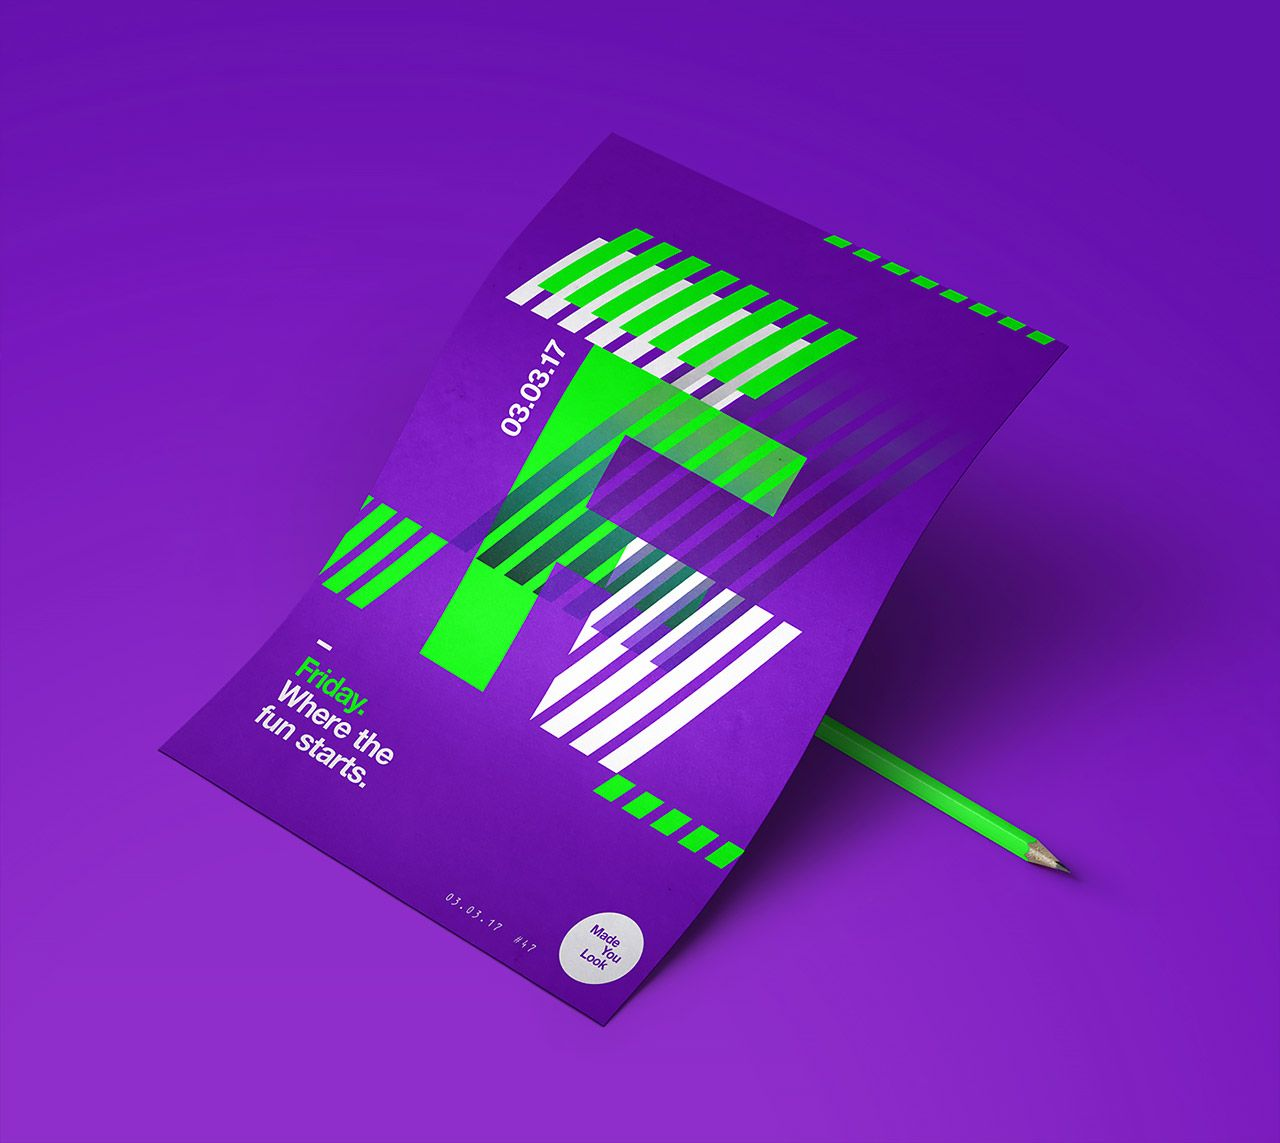 Made You Look Poster Collection By Studio Jq